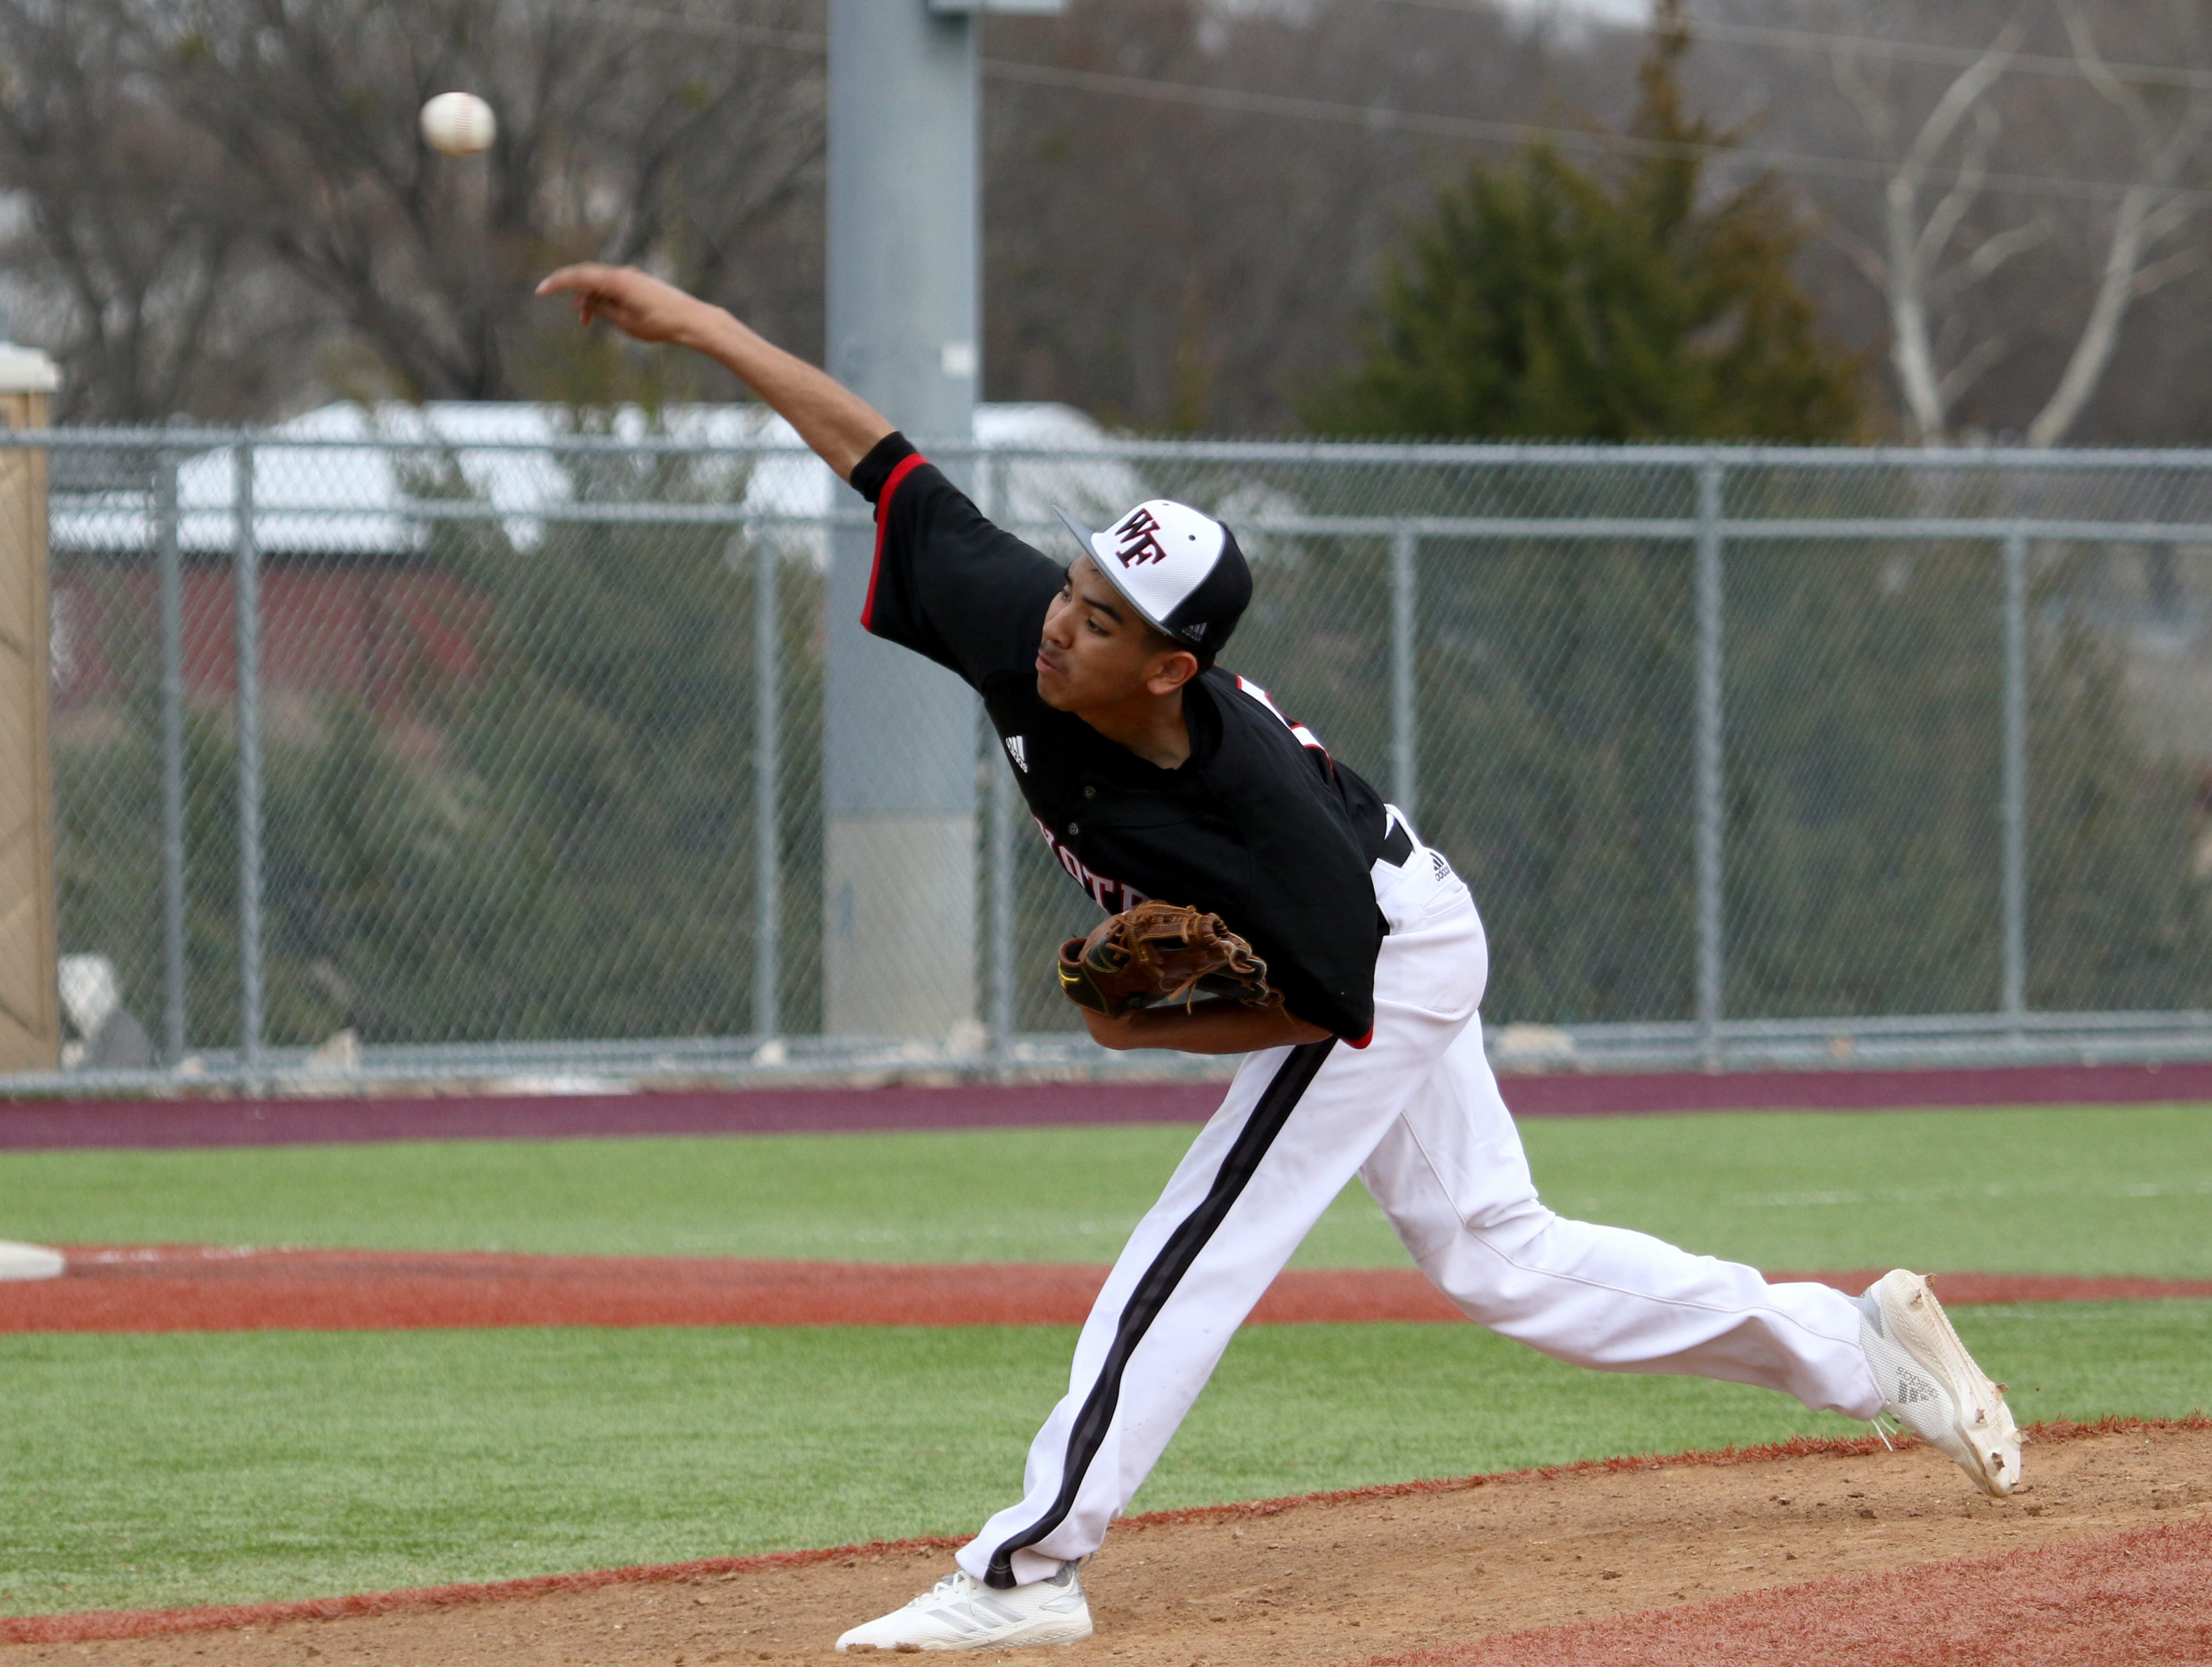 Wichita Falls High School's Francisco Maldanado pitches against Holliday Friday, March 8, 2019, in Bowie for the Walker Stallcup Tournament.